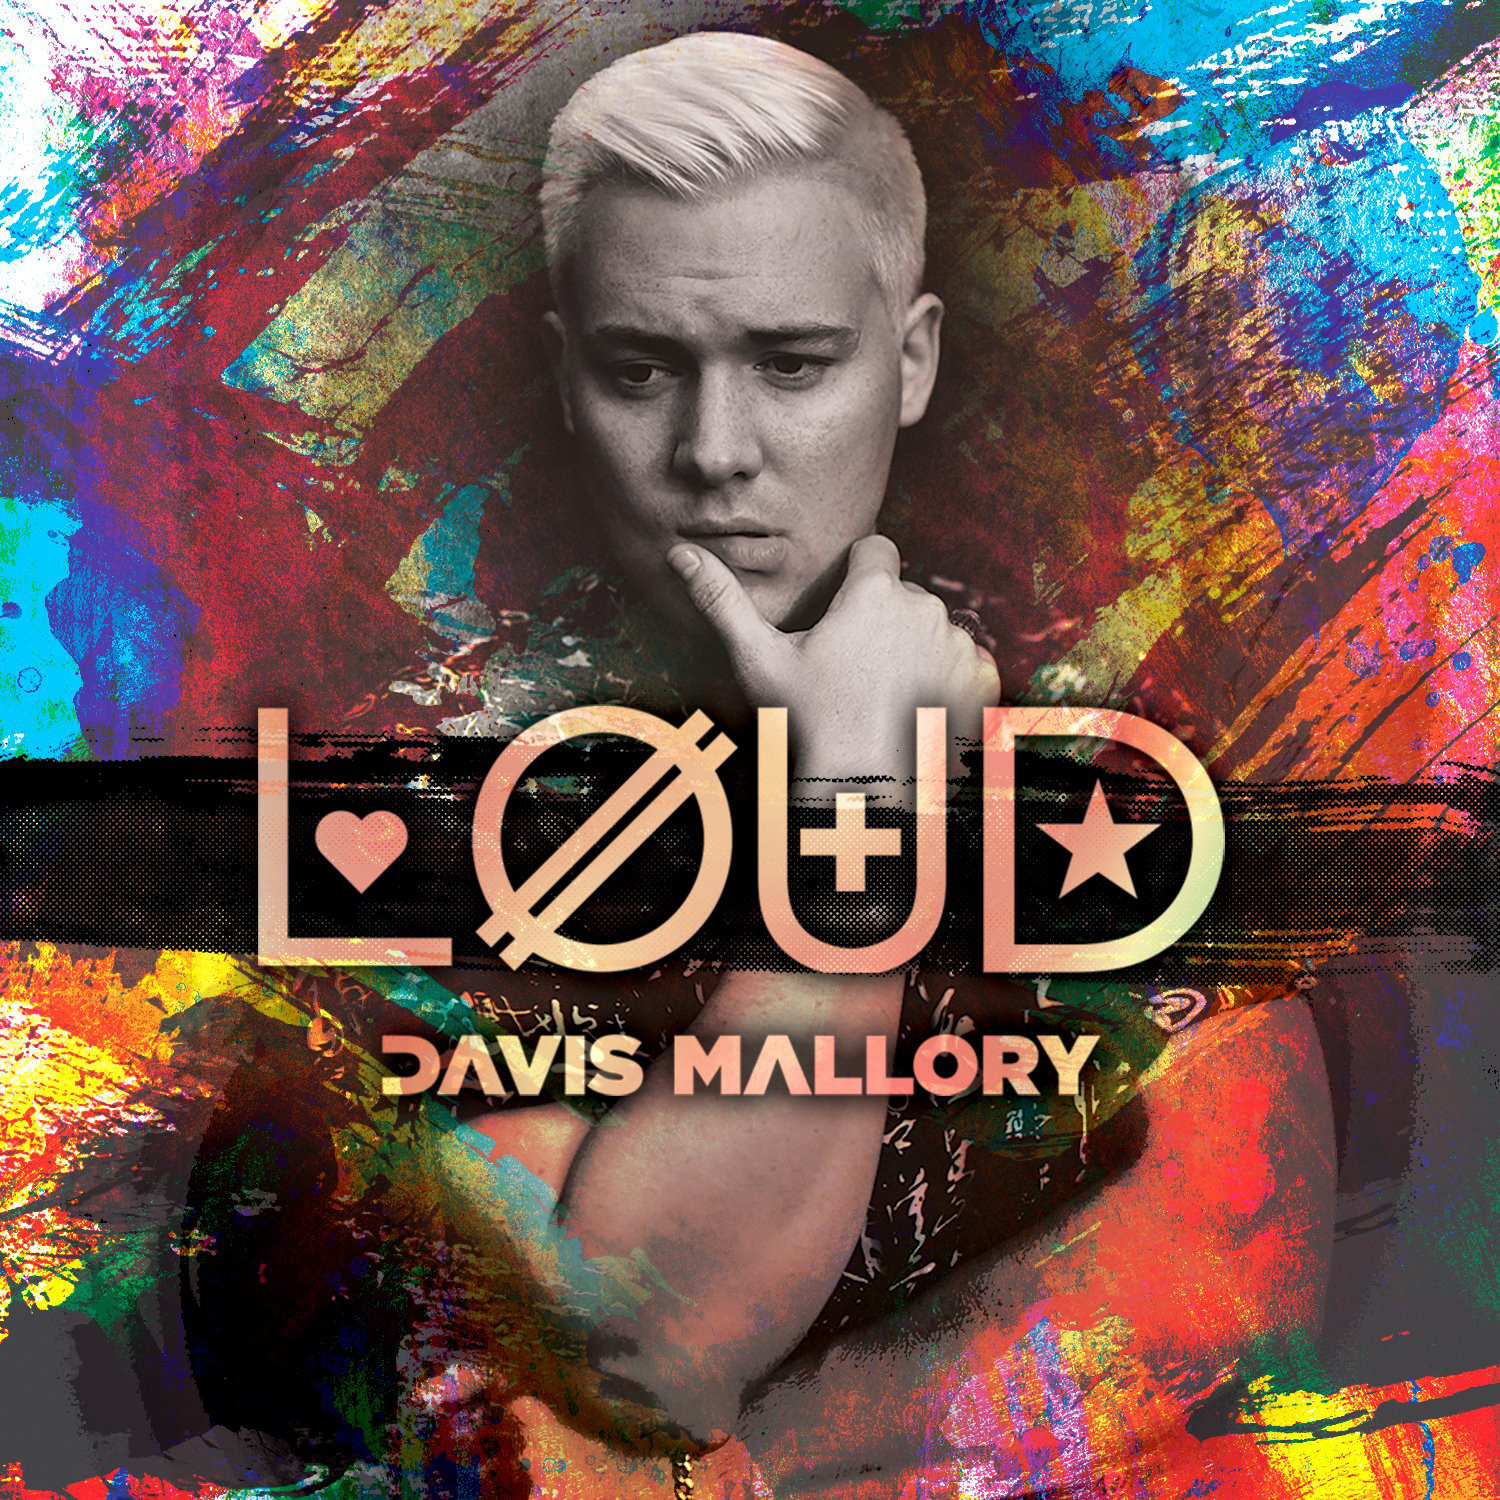 Davis Mallory - LOUD Single Art